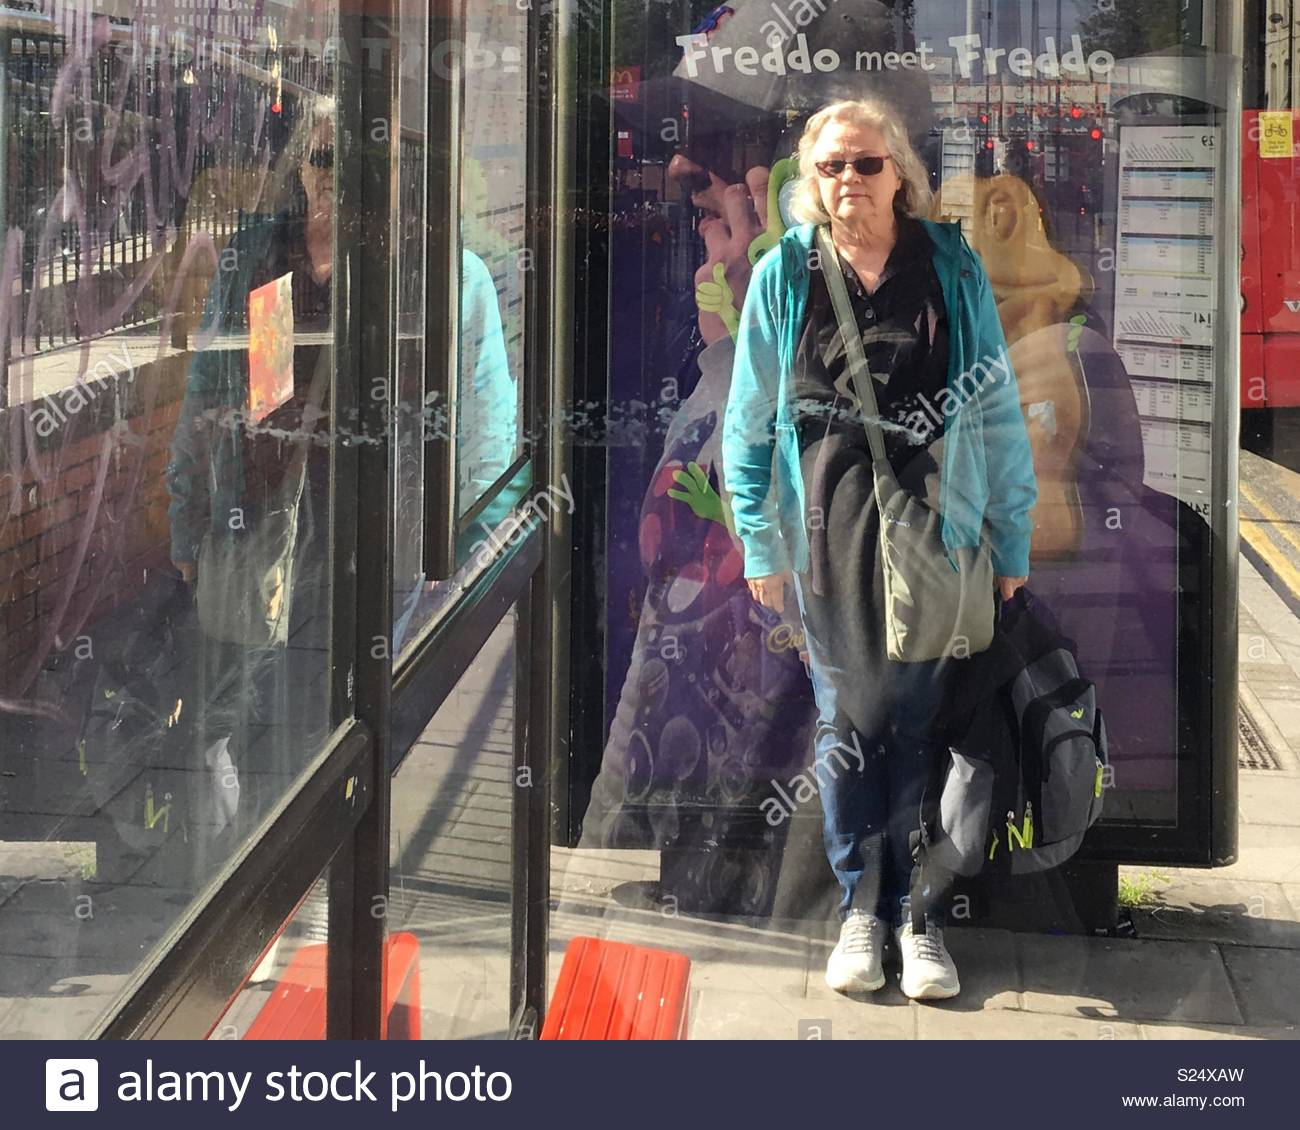 Waiting in the sun - Stock Image